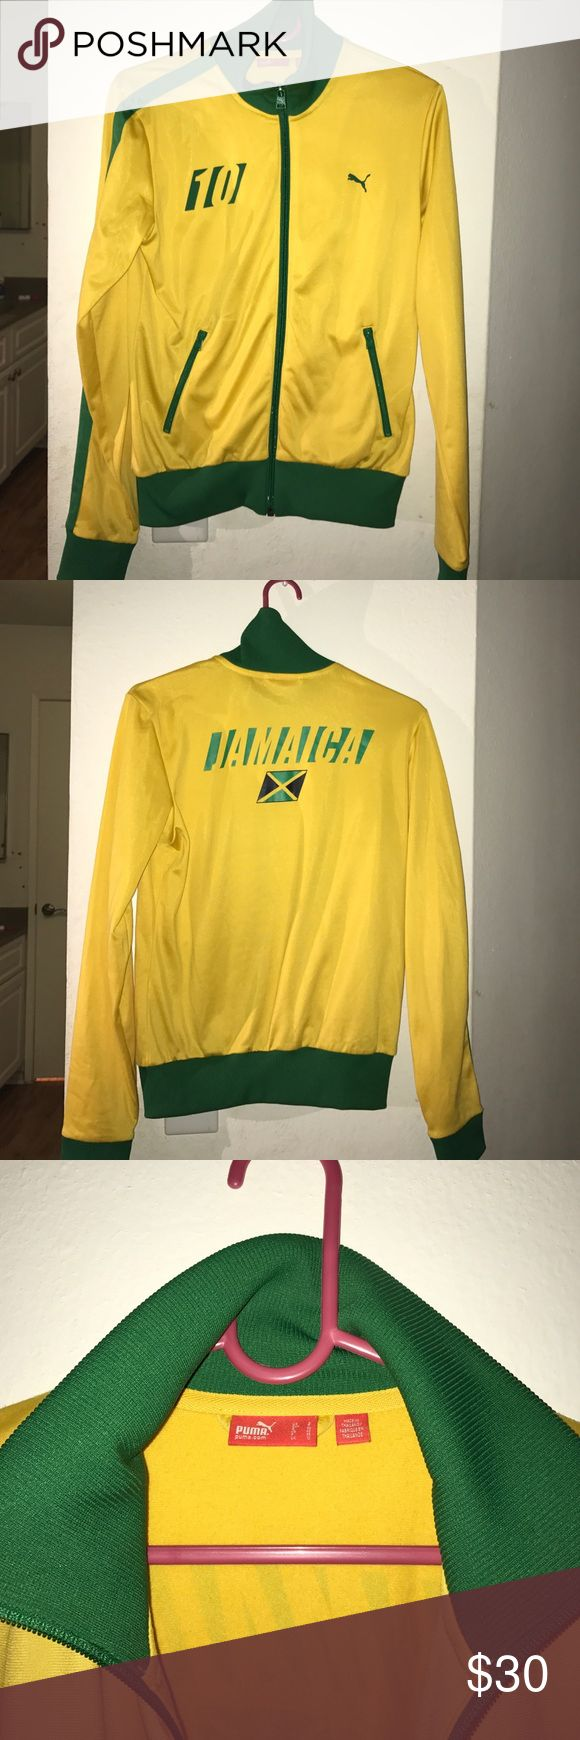 Rare PUMA Jamaica Track Jacket S Like new Condition! Size Small | 100%Polyester (IF PAY WITH PAYPAL - FREE SHIPPING ) Puma Jackets & Coats